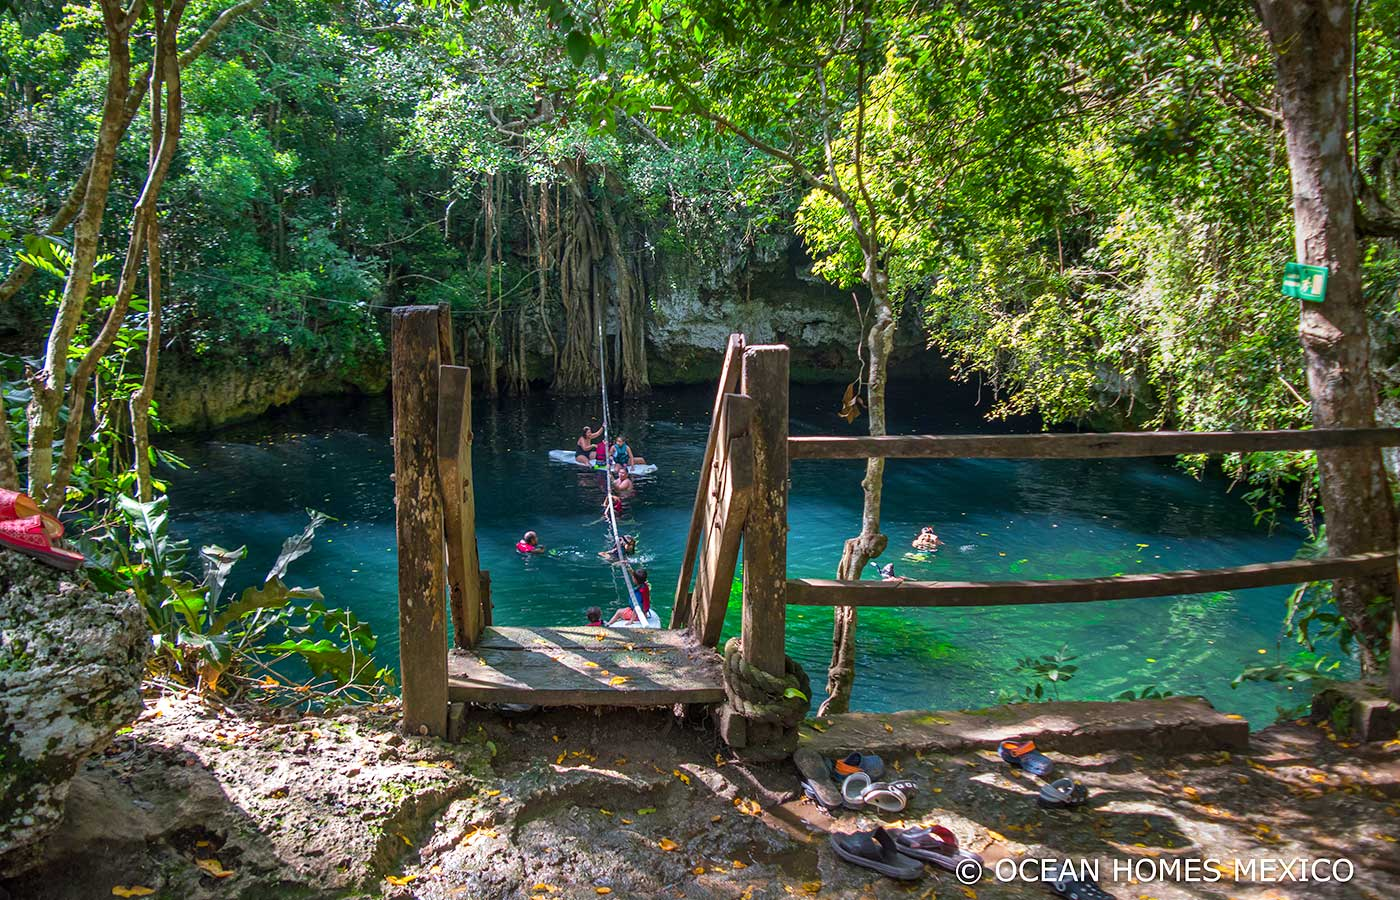 a rough hewn wooden ladder leads down into the blue green waters of a jungle cenote near puerto morelos. People can be seen swiming, rafting, and using a zip line